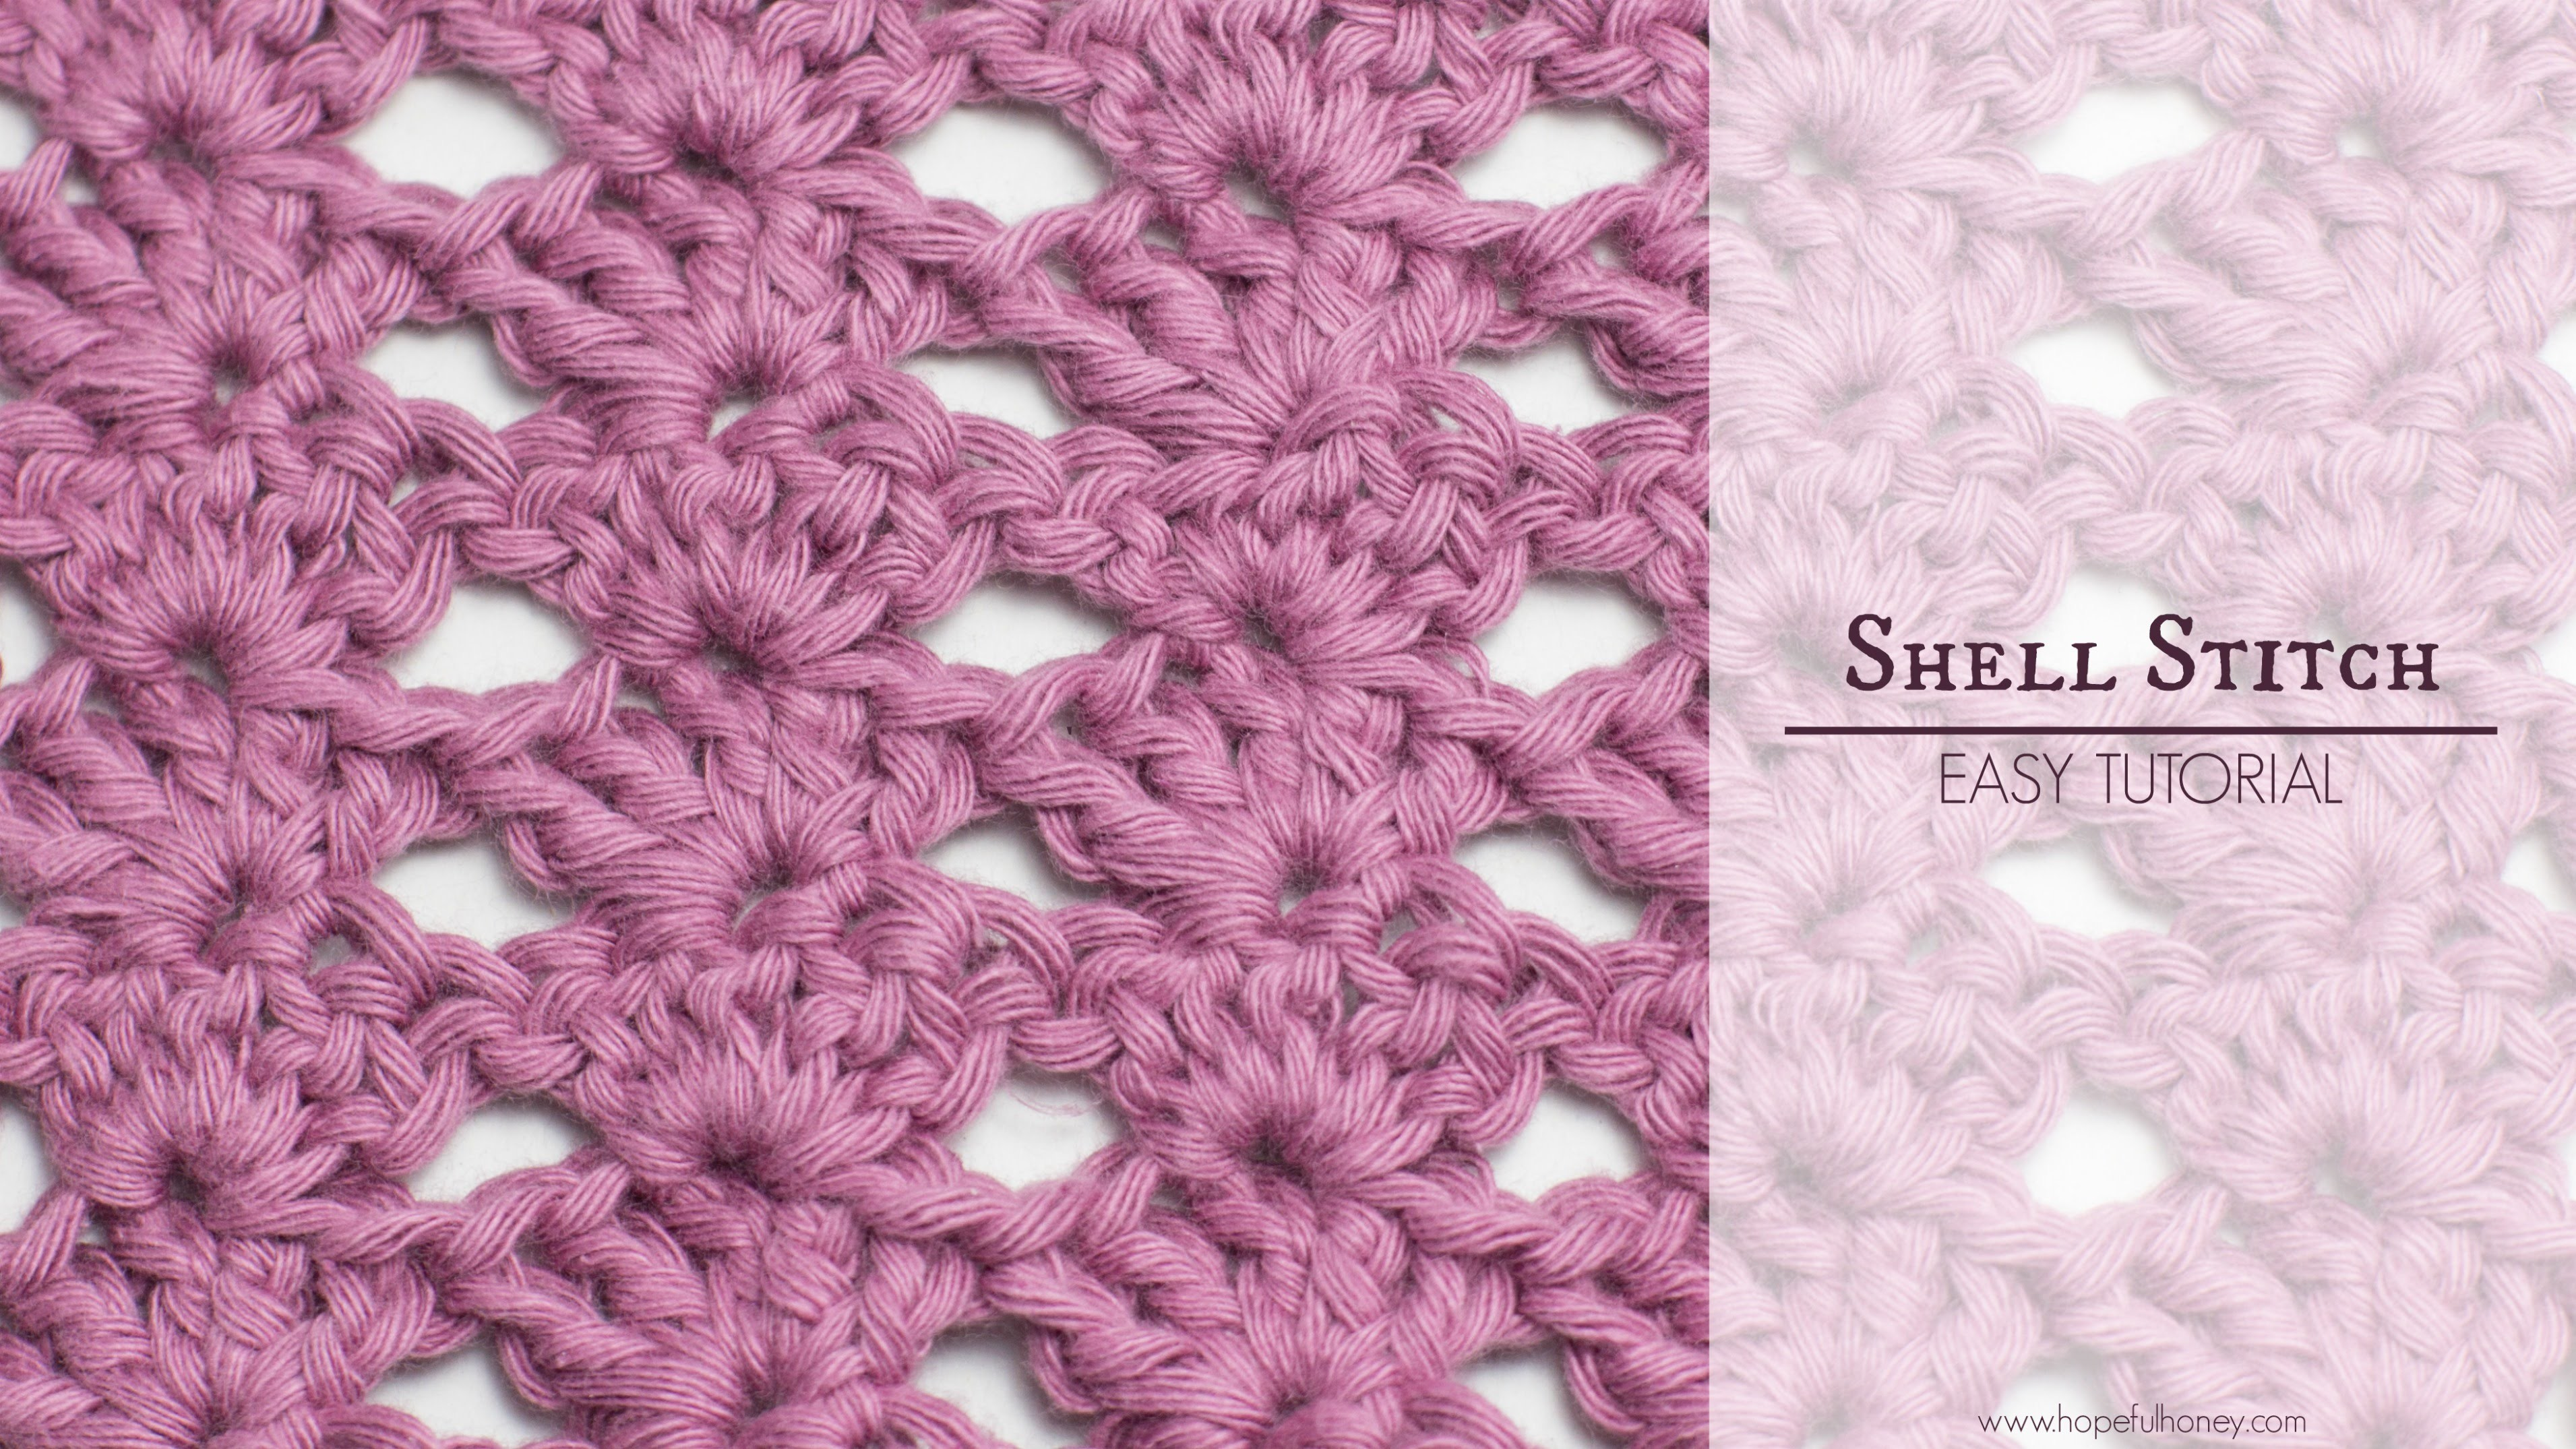 How To: Crochet The Shell Stitch - Easy Tutorial